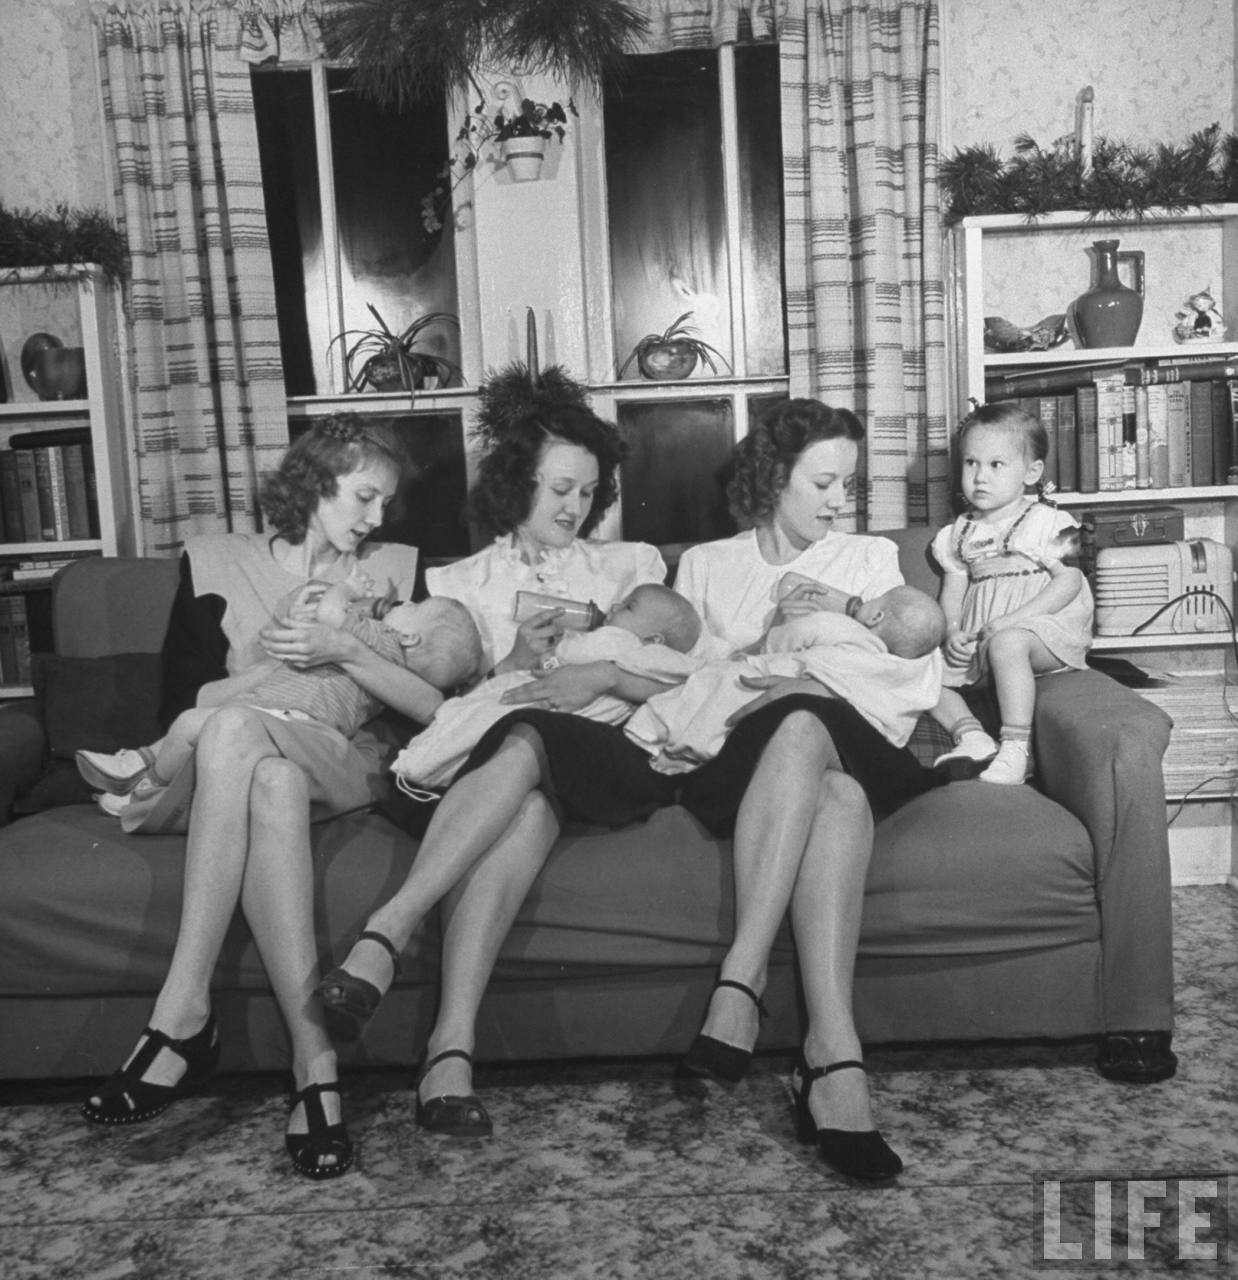 Daughters of James Ferdinand Irwin bottle-feeding their babies at Christmas family reunion celebration marking the return of Irwins sons from service in WWII, L-R: Jeanne Haney & son Joe, Myra Lee Love & son John, Betty Roush and her daughters Julia Ann.© Time Inc. Myron Davis